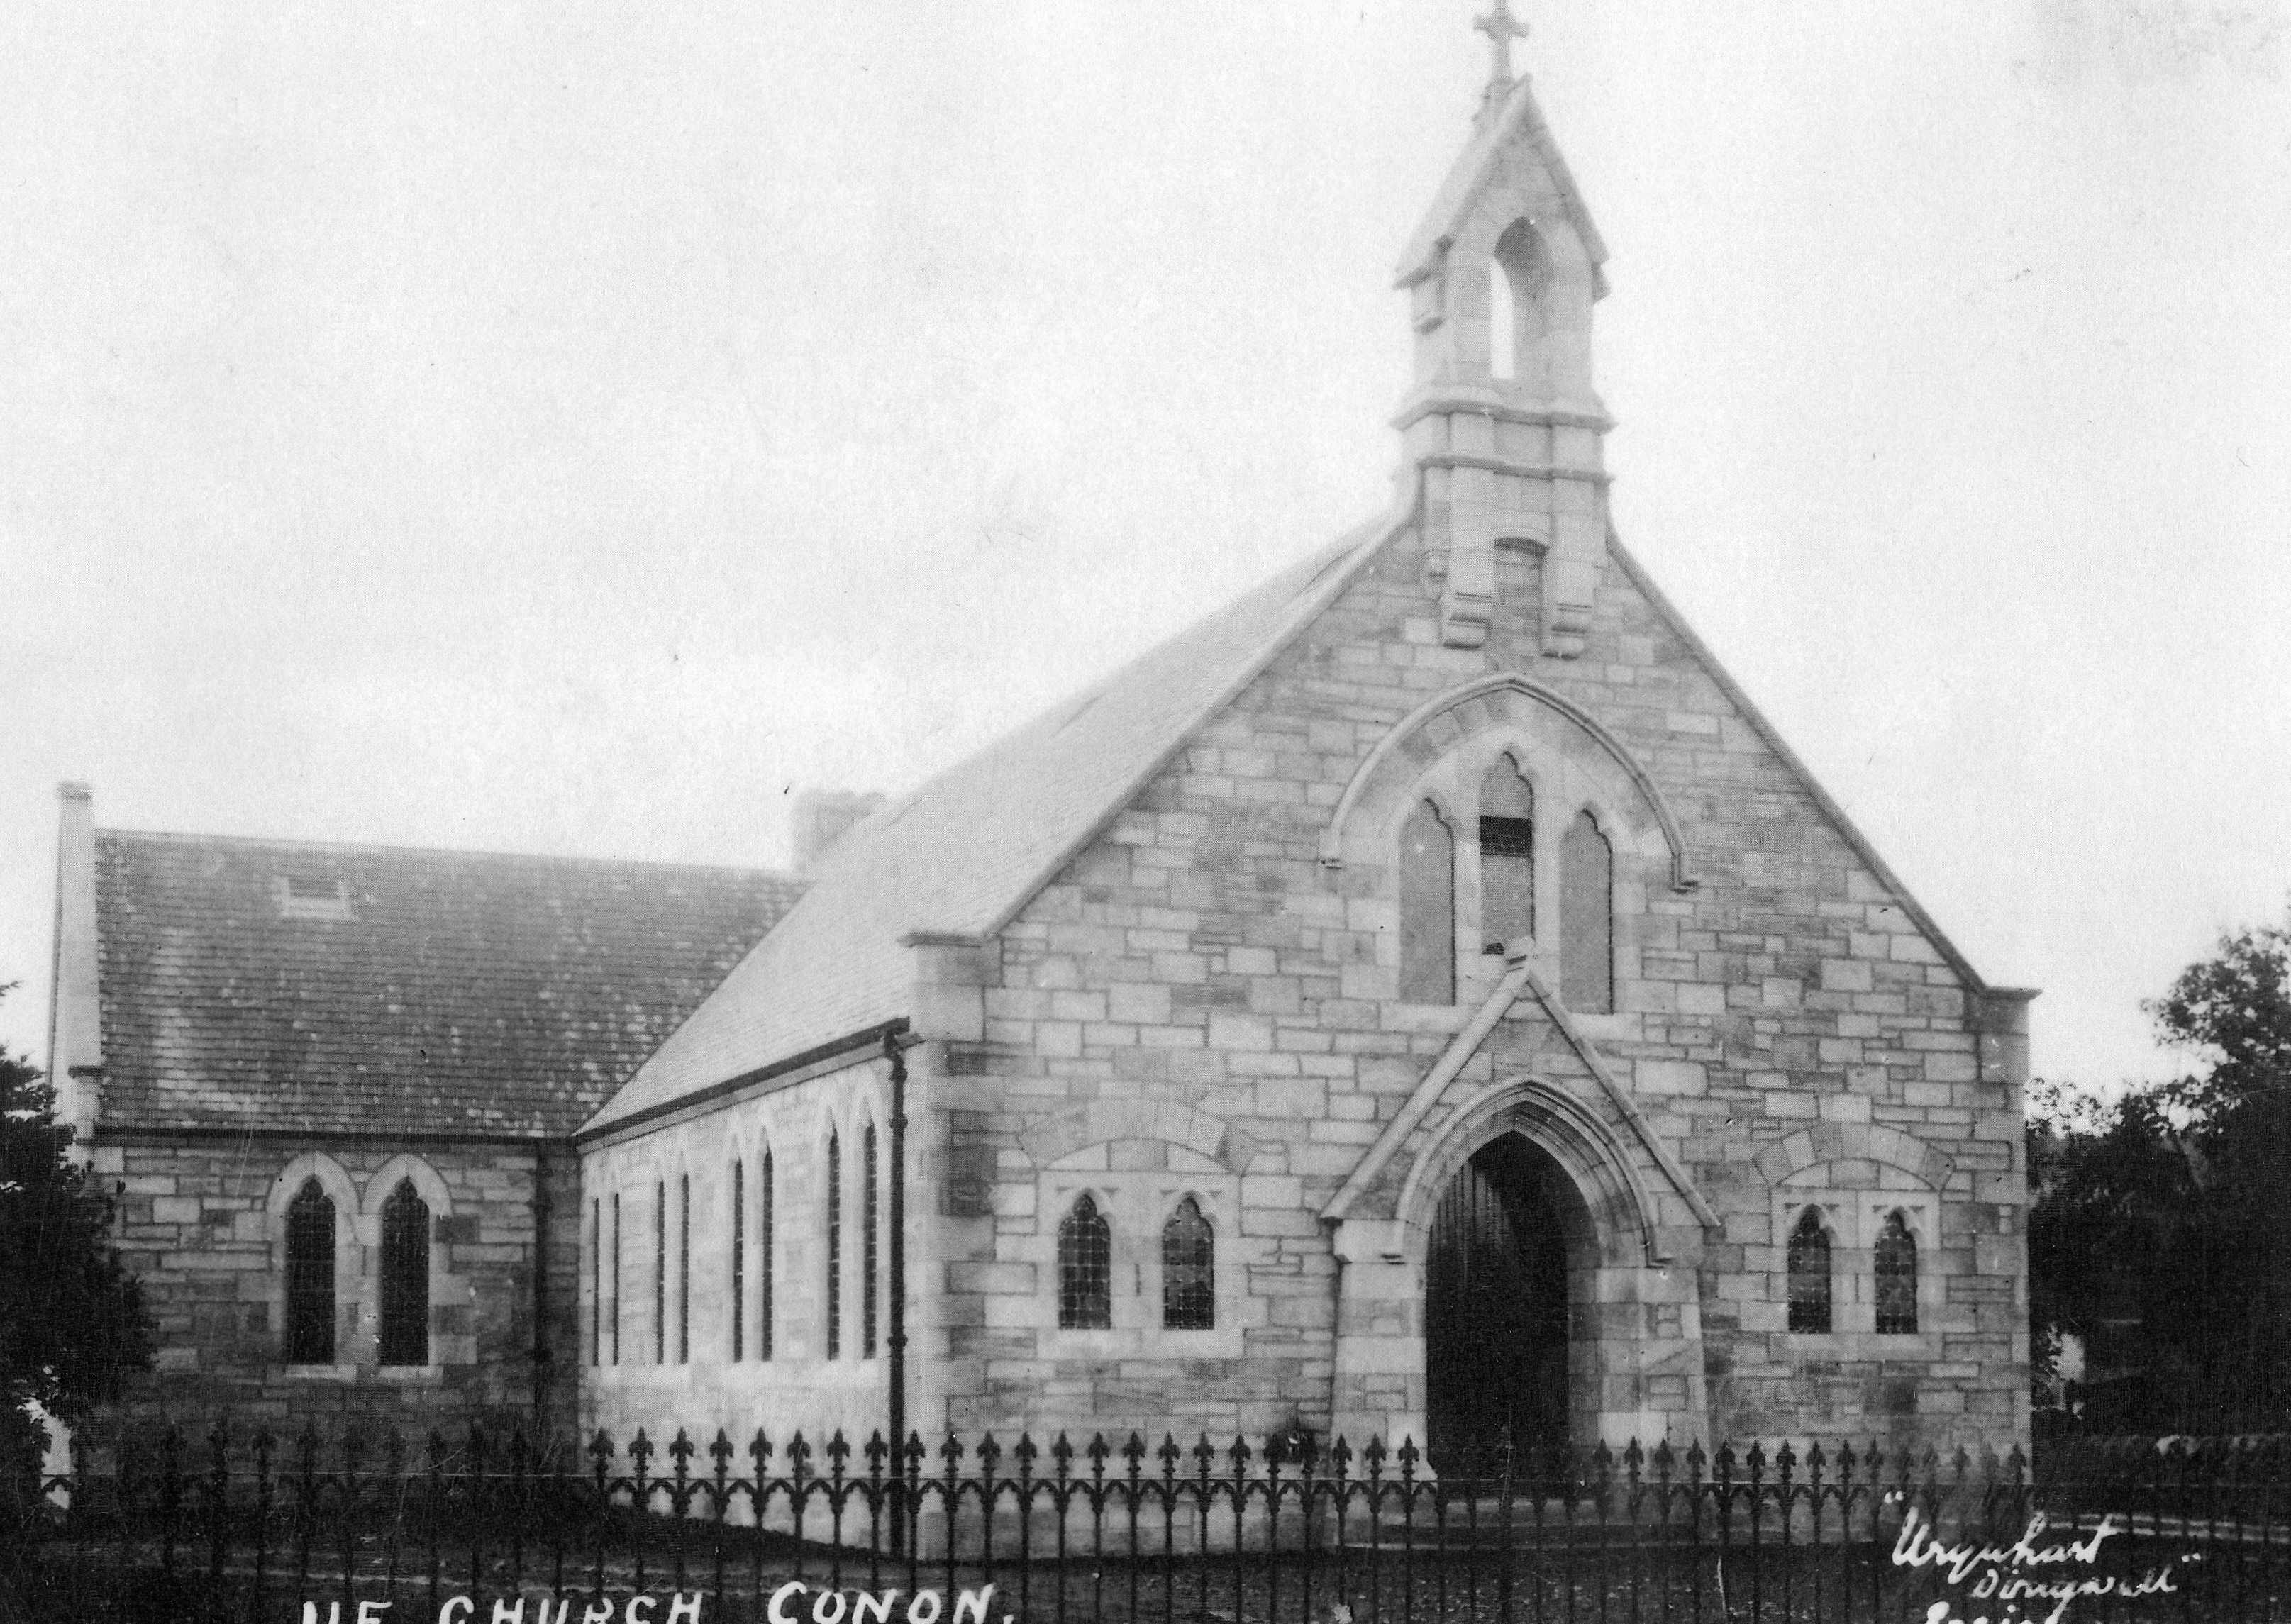 Ferintosh Church of Scotland - possibly 1920s